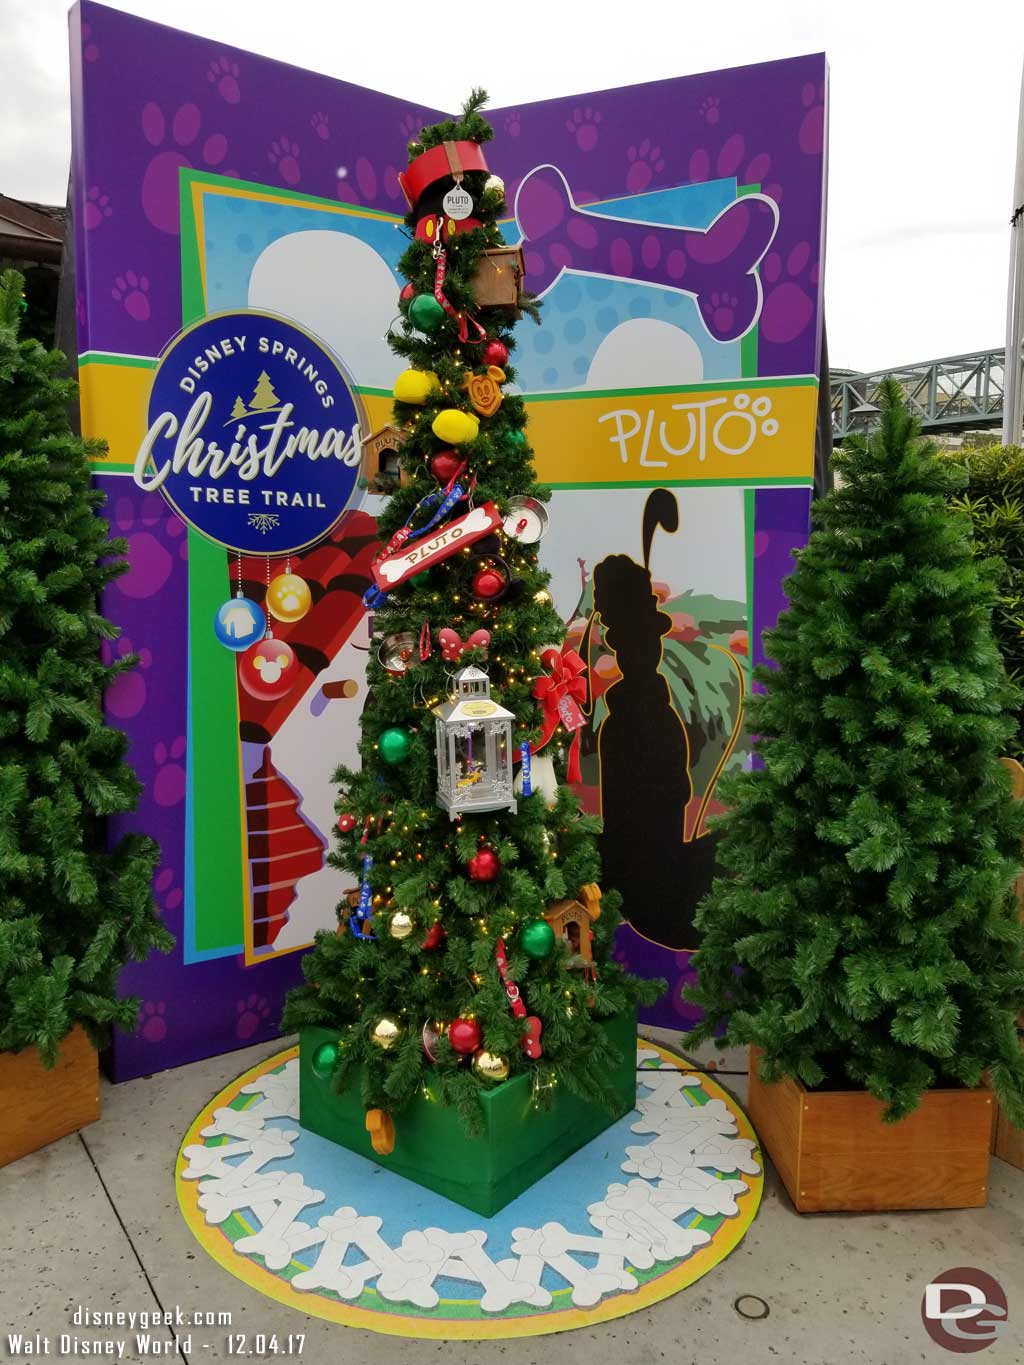 Disney Springs Christmas Tree Trail 2017 Trees Amp Signs